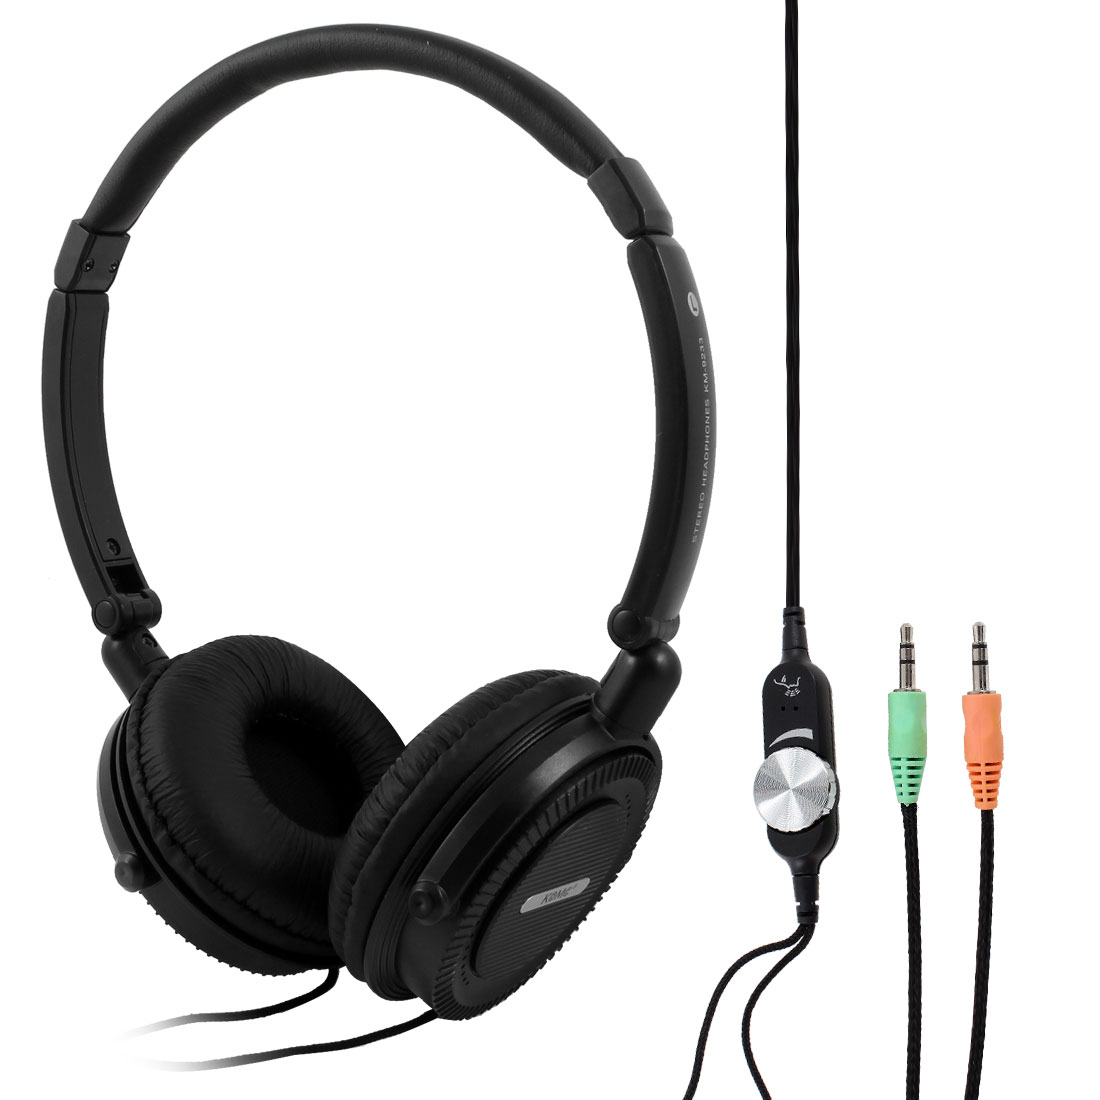 Black 3.5mm Plug Stereo Bass Headset Headphone Earphone Mic for Notebook Laptop